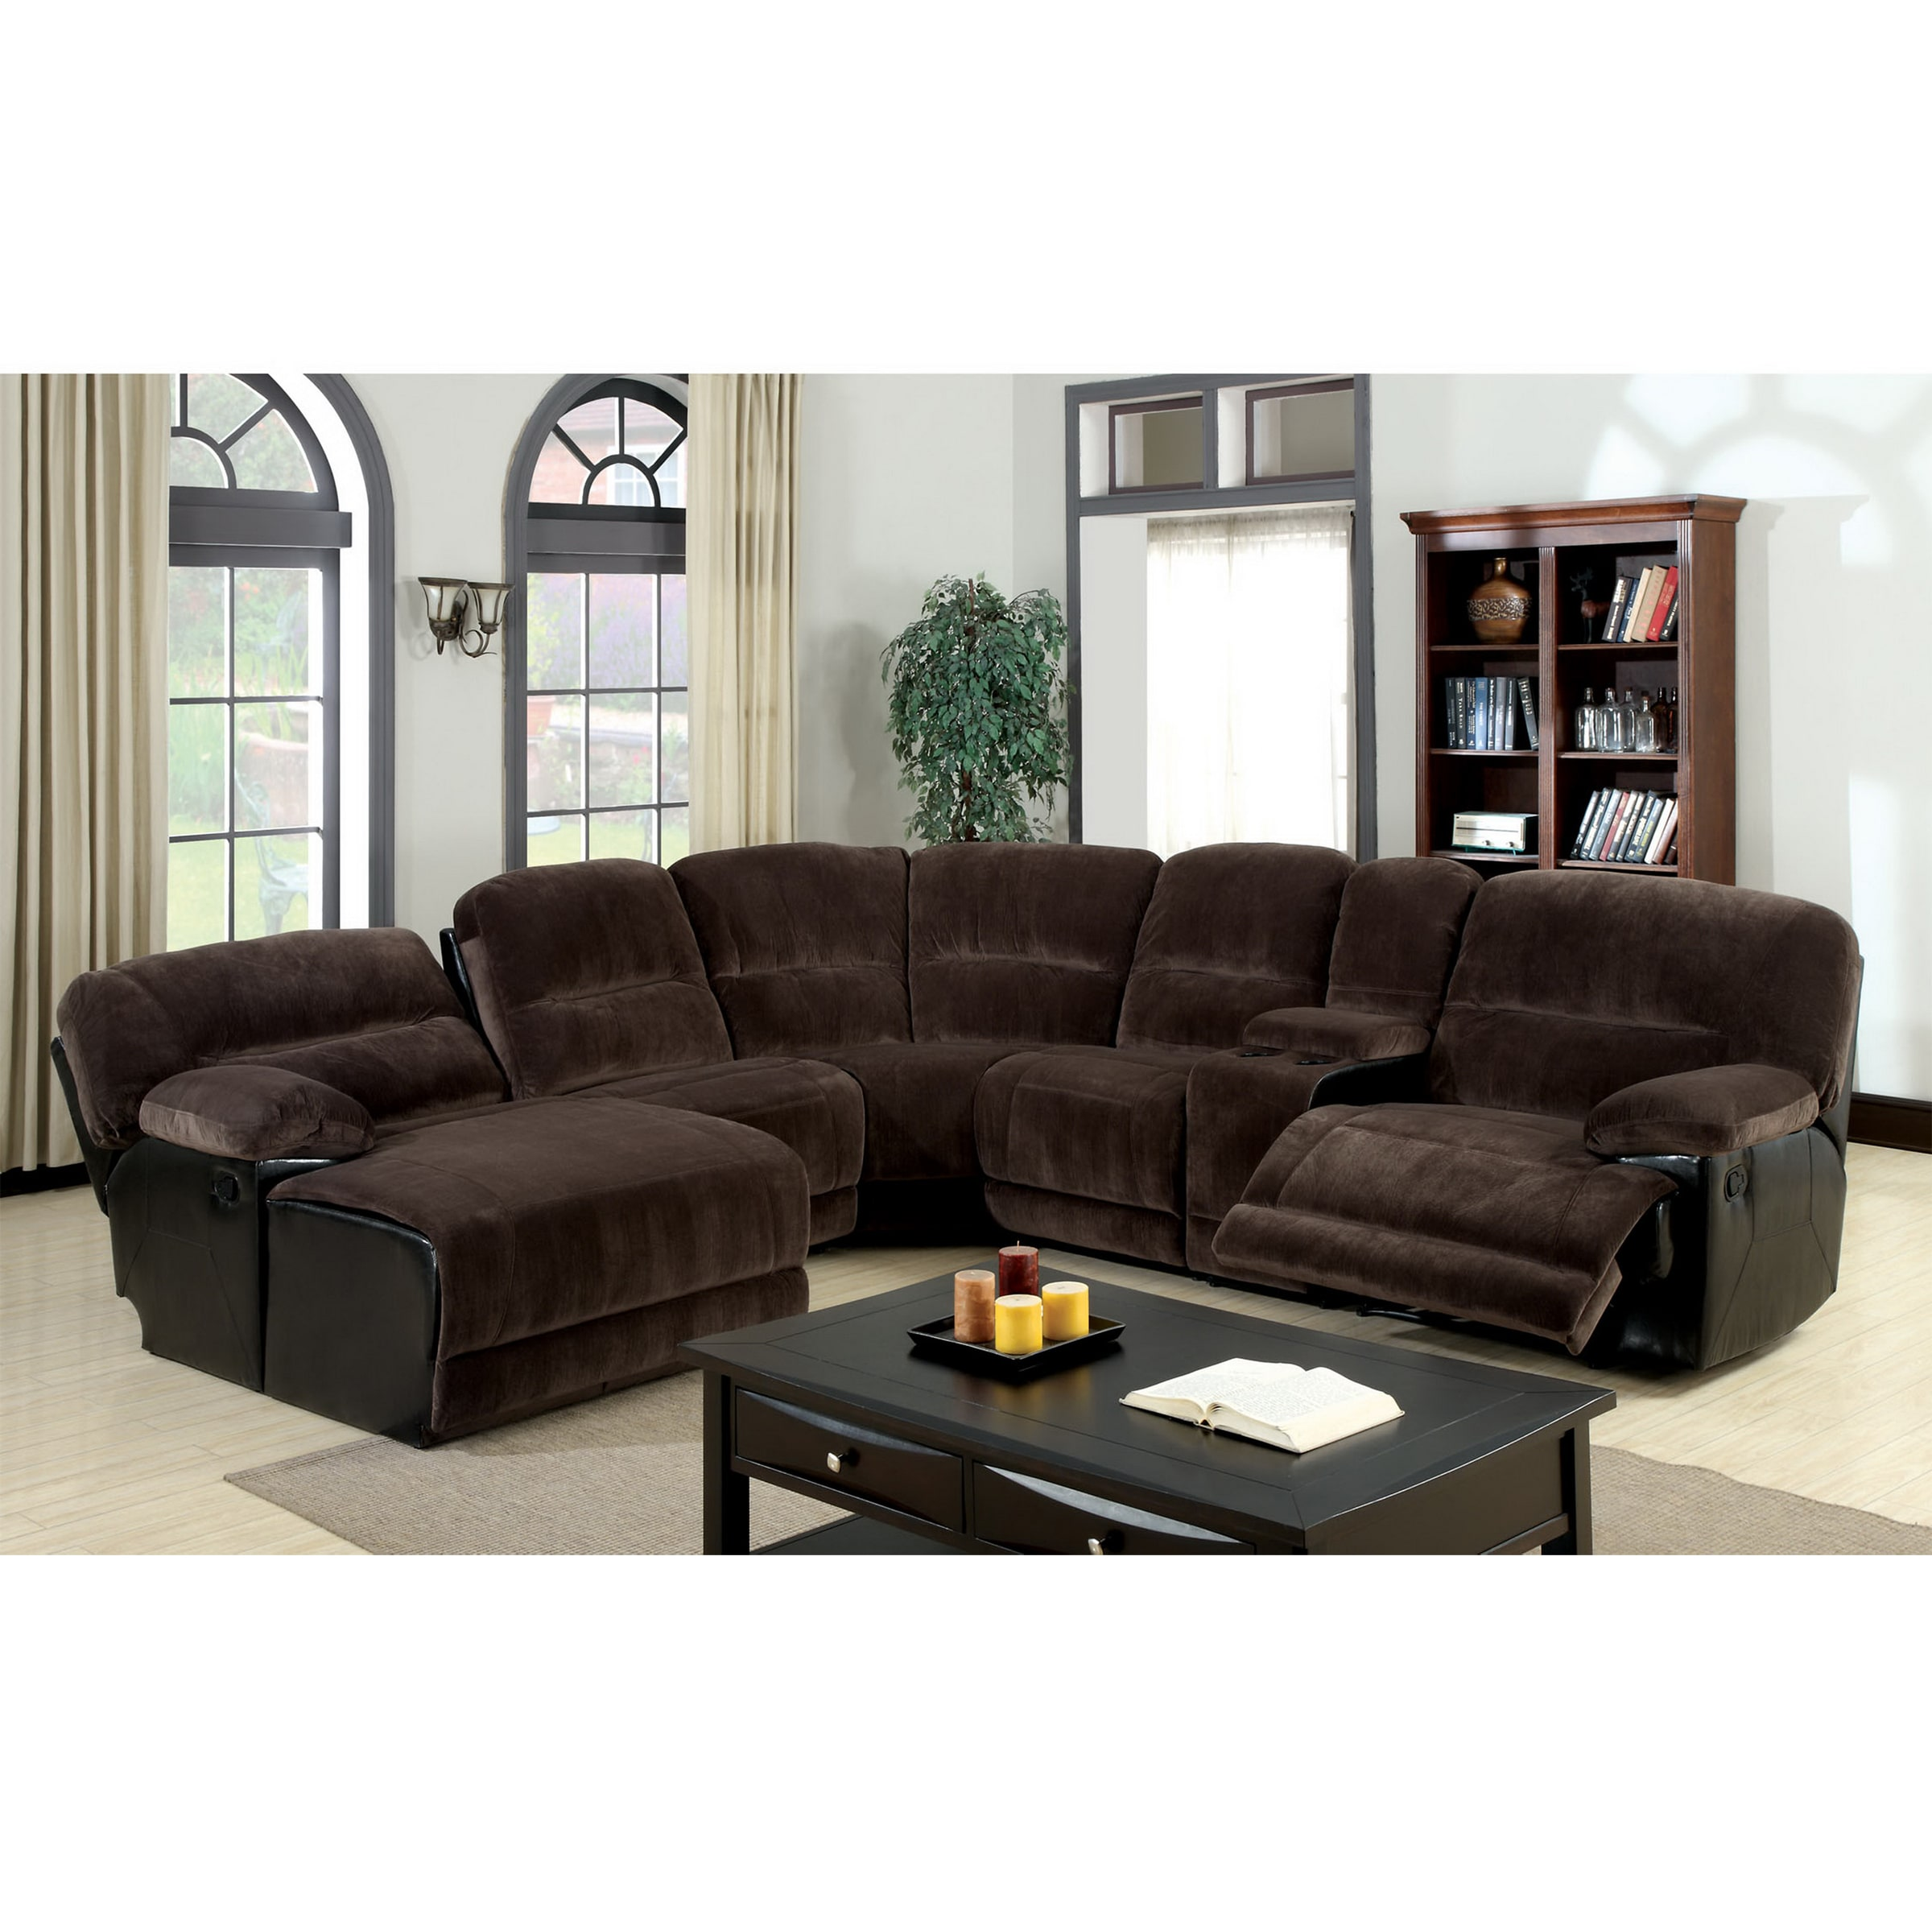 Furniture Of America Cyclopean Dark Brown Microfiber